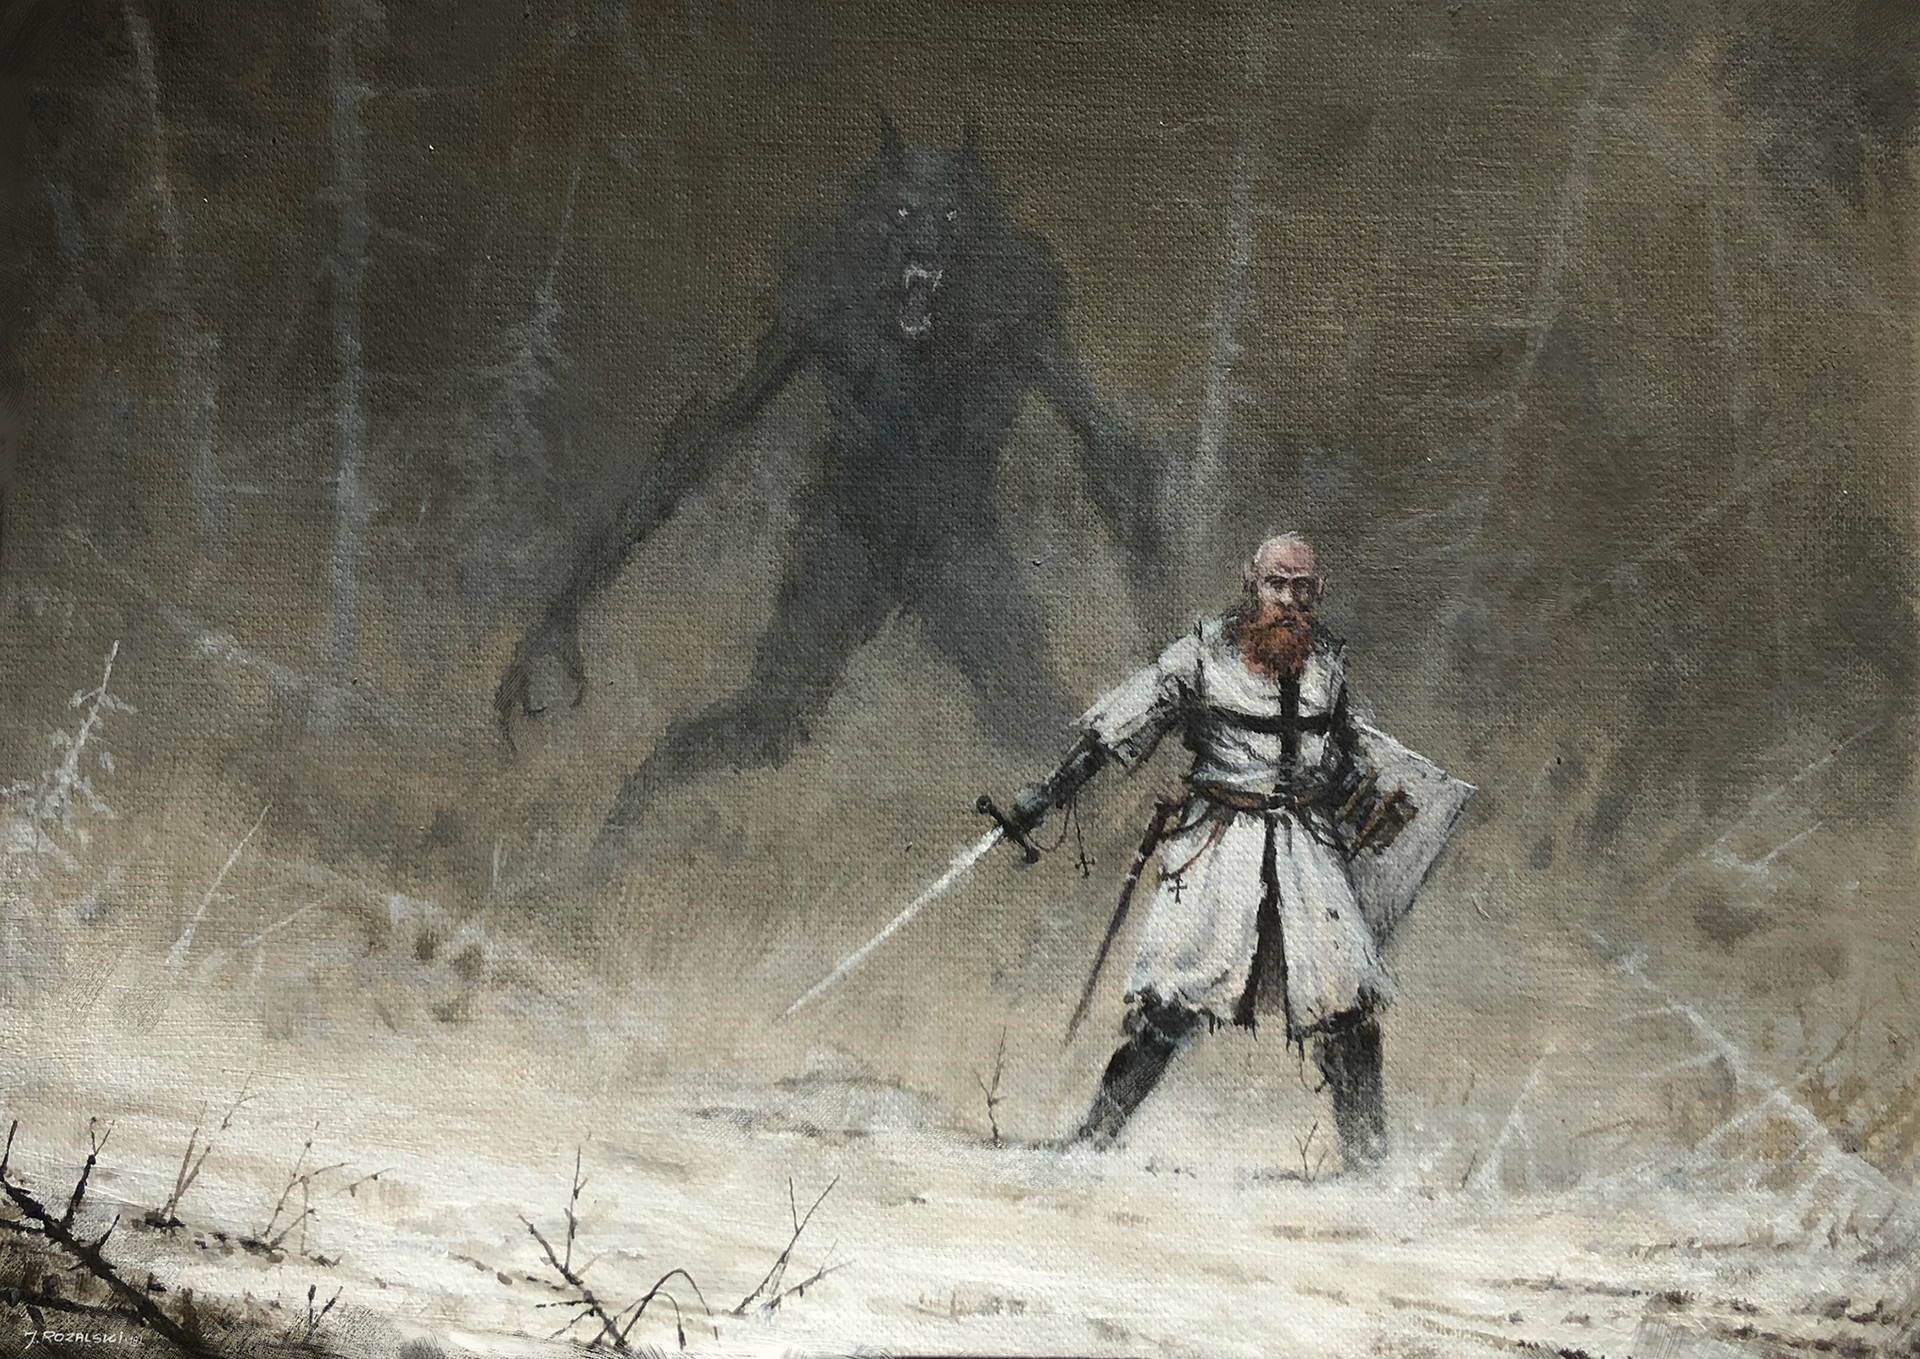 Jakub rozalski wrong place wrong god